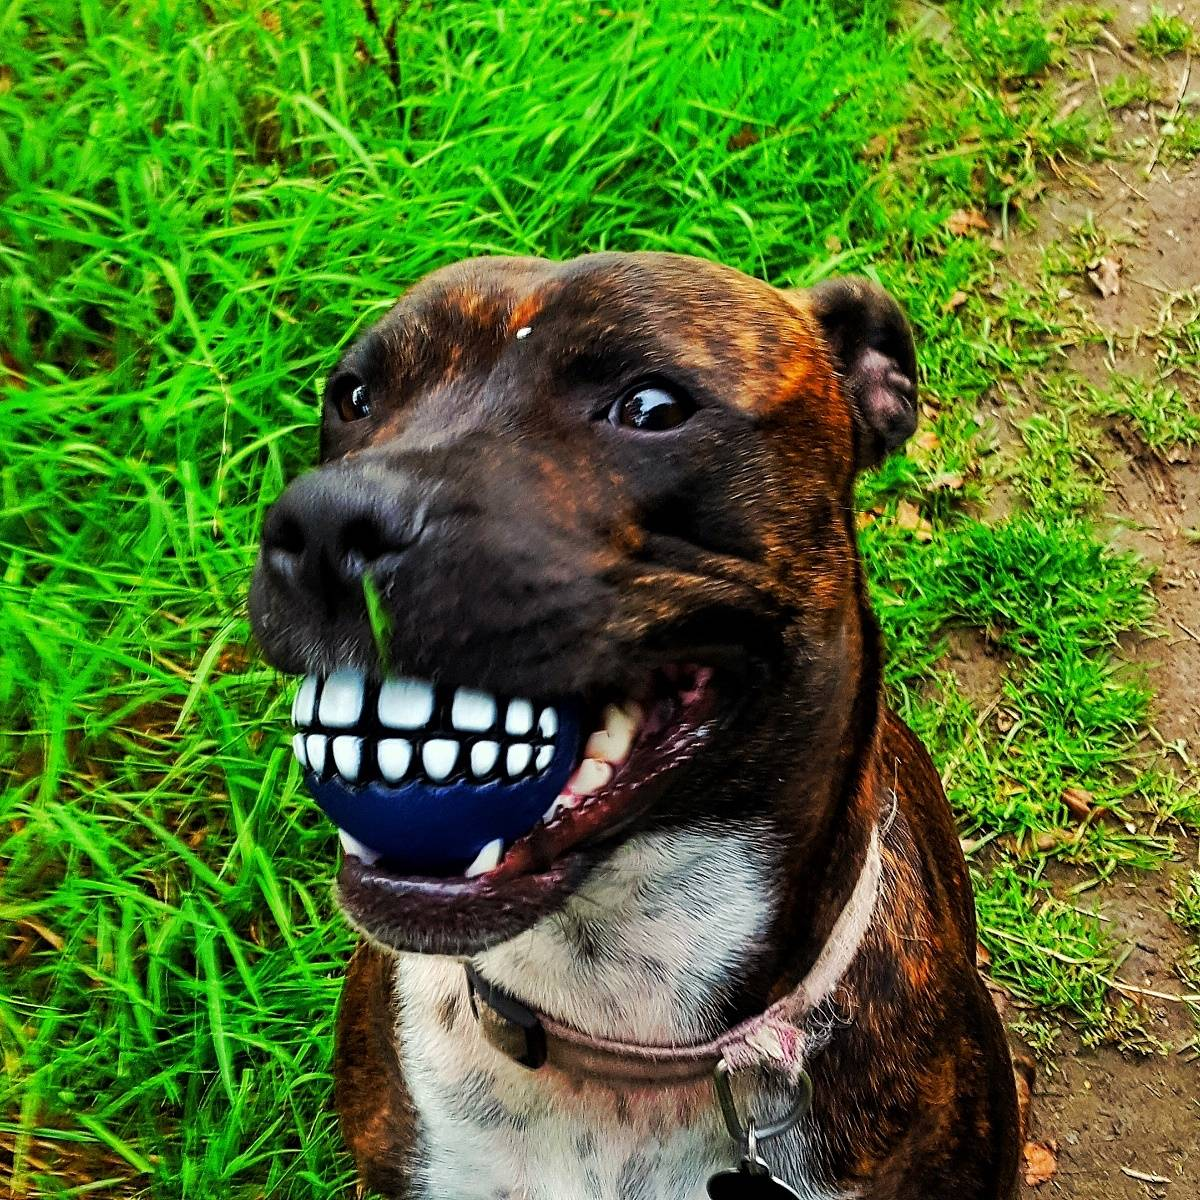 brindle staffie dog with a ball in her mouth. The ball is blue with teeth drawn onto it. Dog looks like she is smiling a crazy grin.